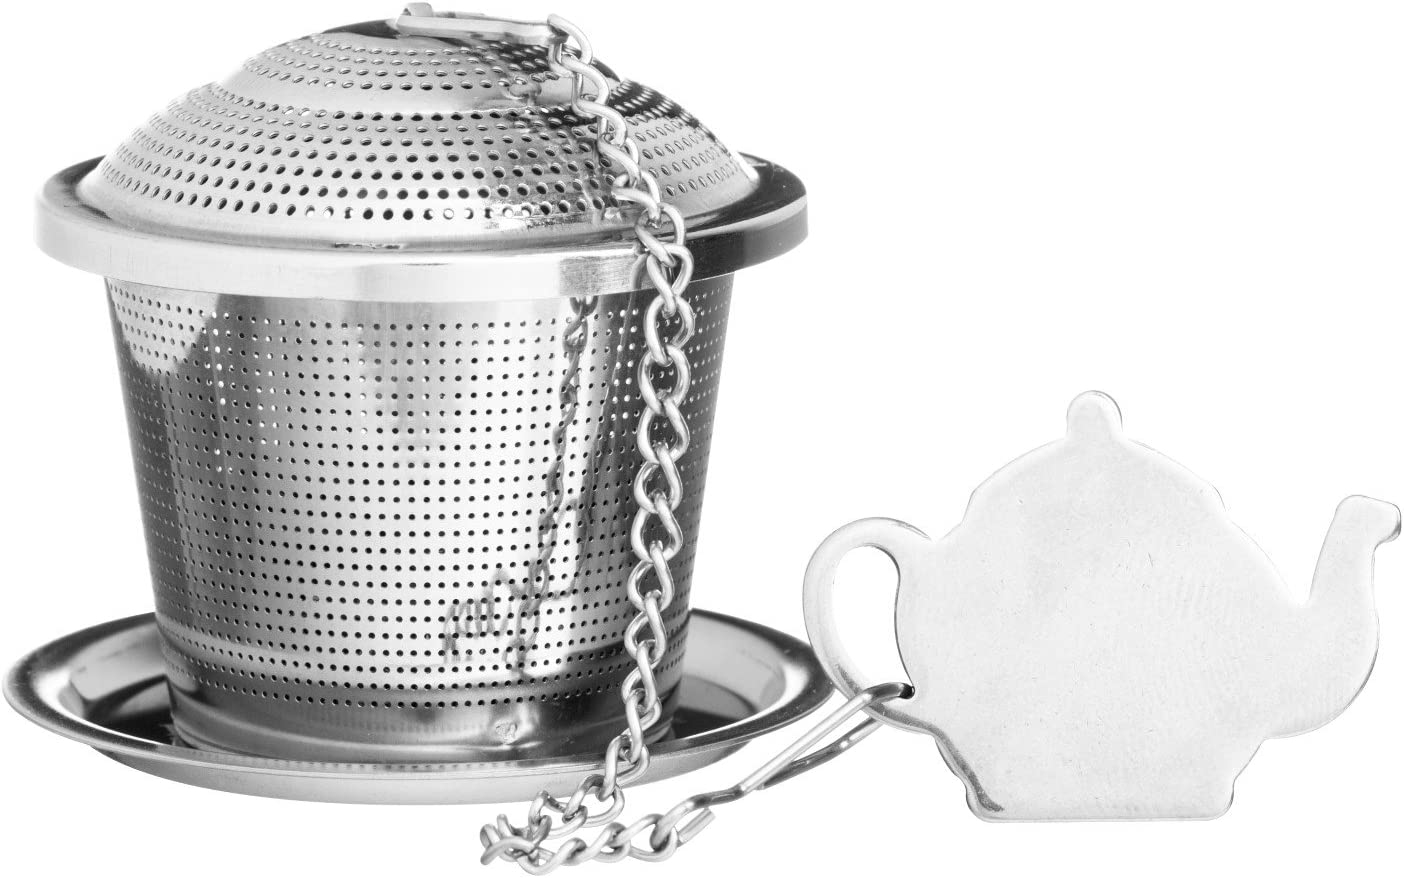 Stainless Steel Silver, Price and Kensington 2-Cup Teapot Filter